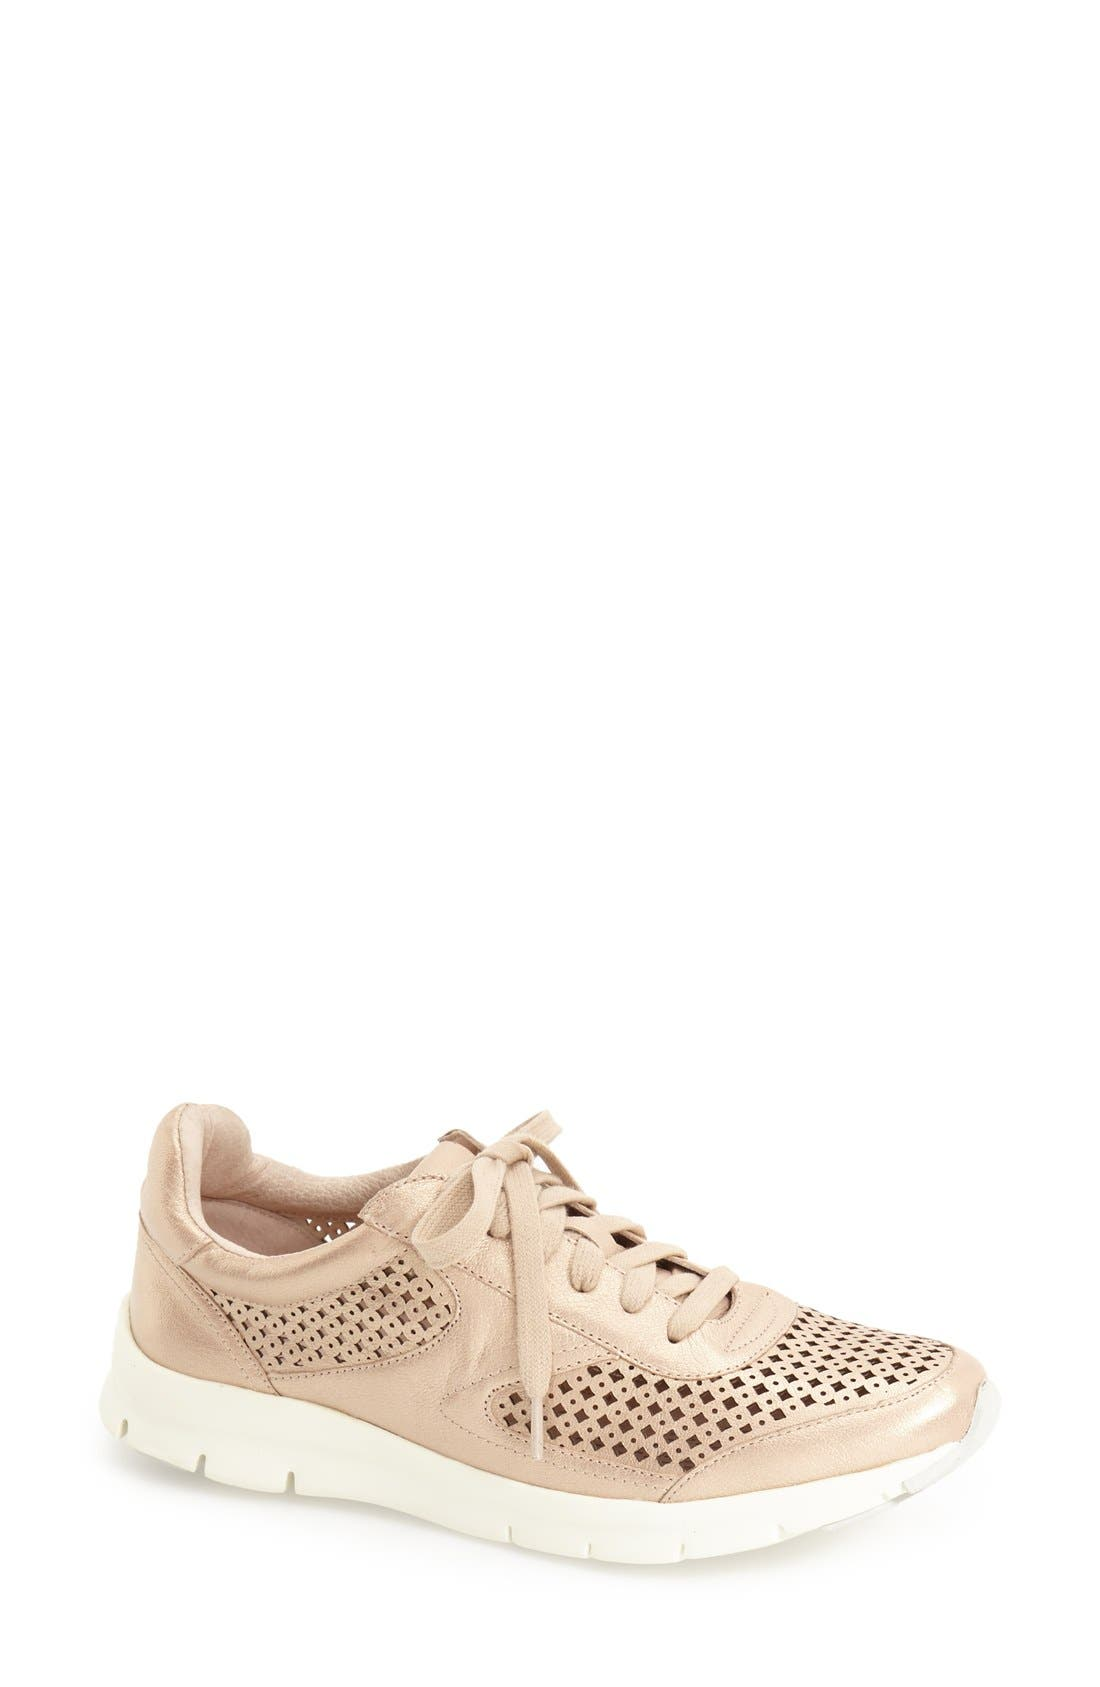 'Tammi' Perforated Leather Sneaker,                         Main,                         color, Sand Leather